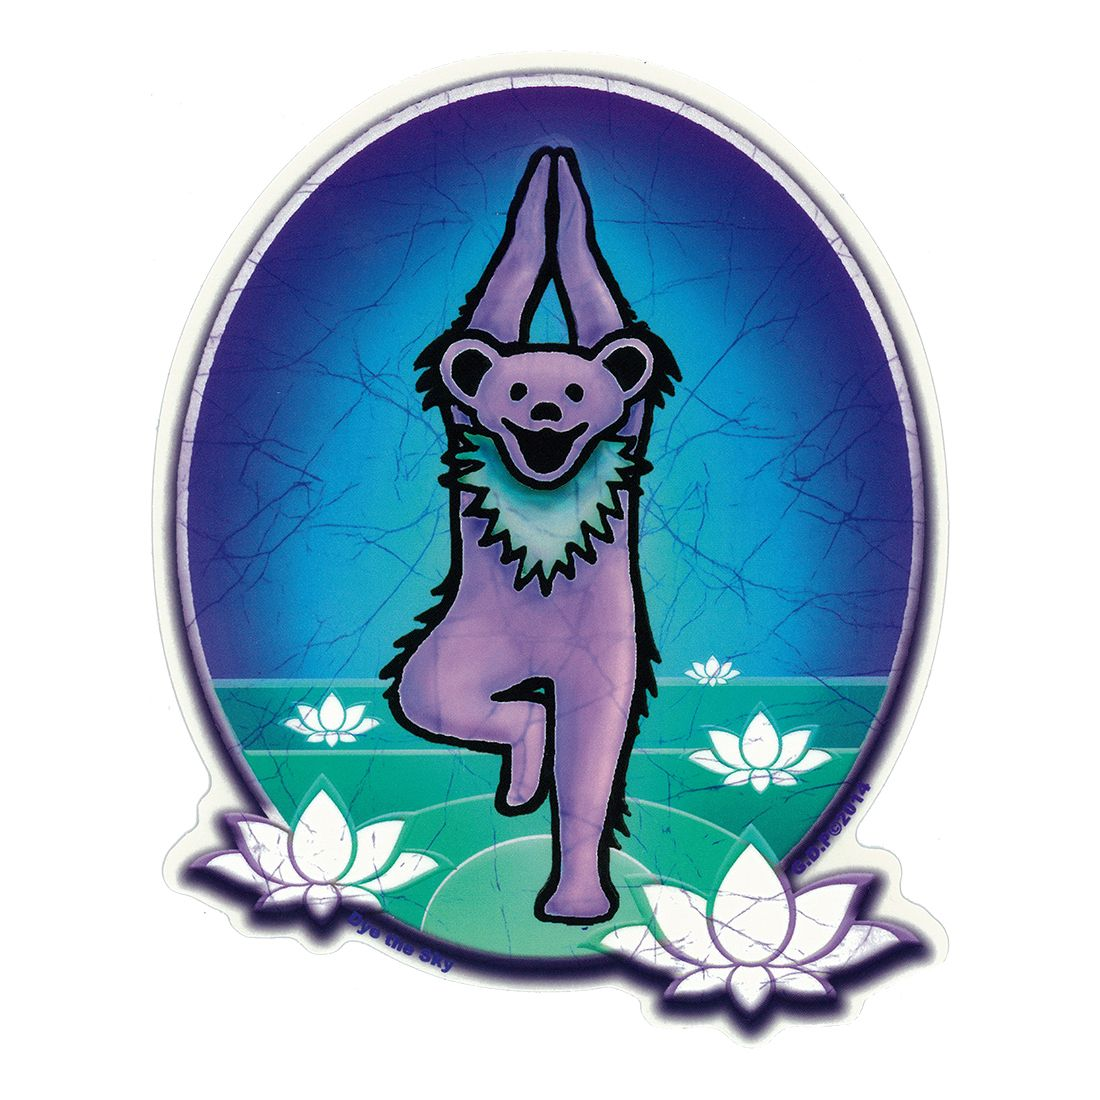 Gd Yoga Bear Sticker Grateful Dead Dancing Bears